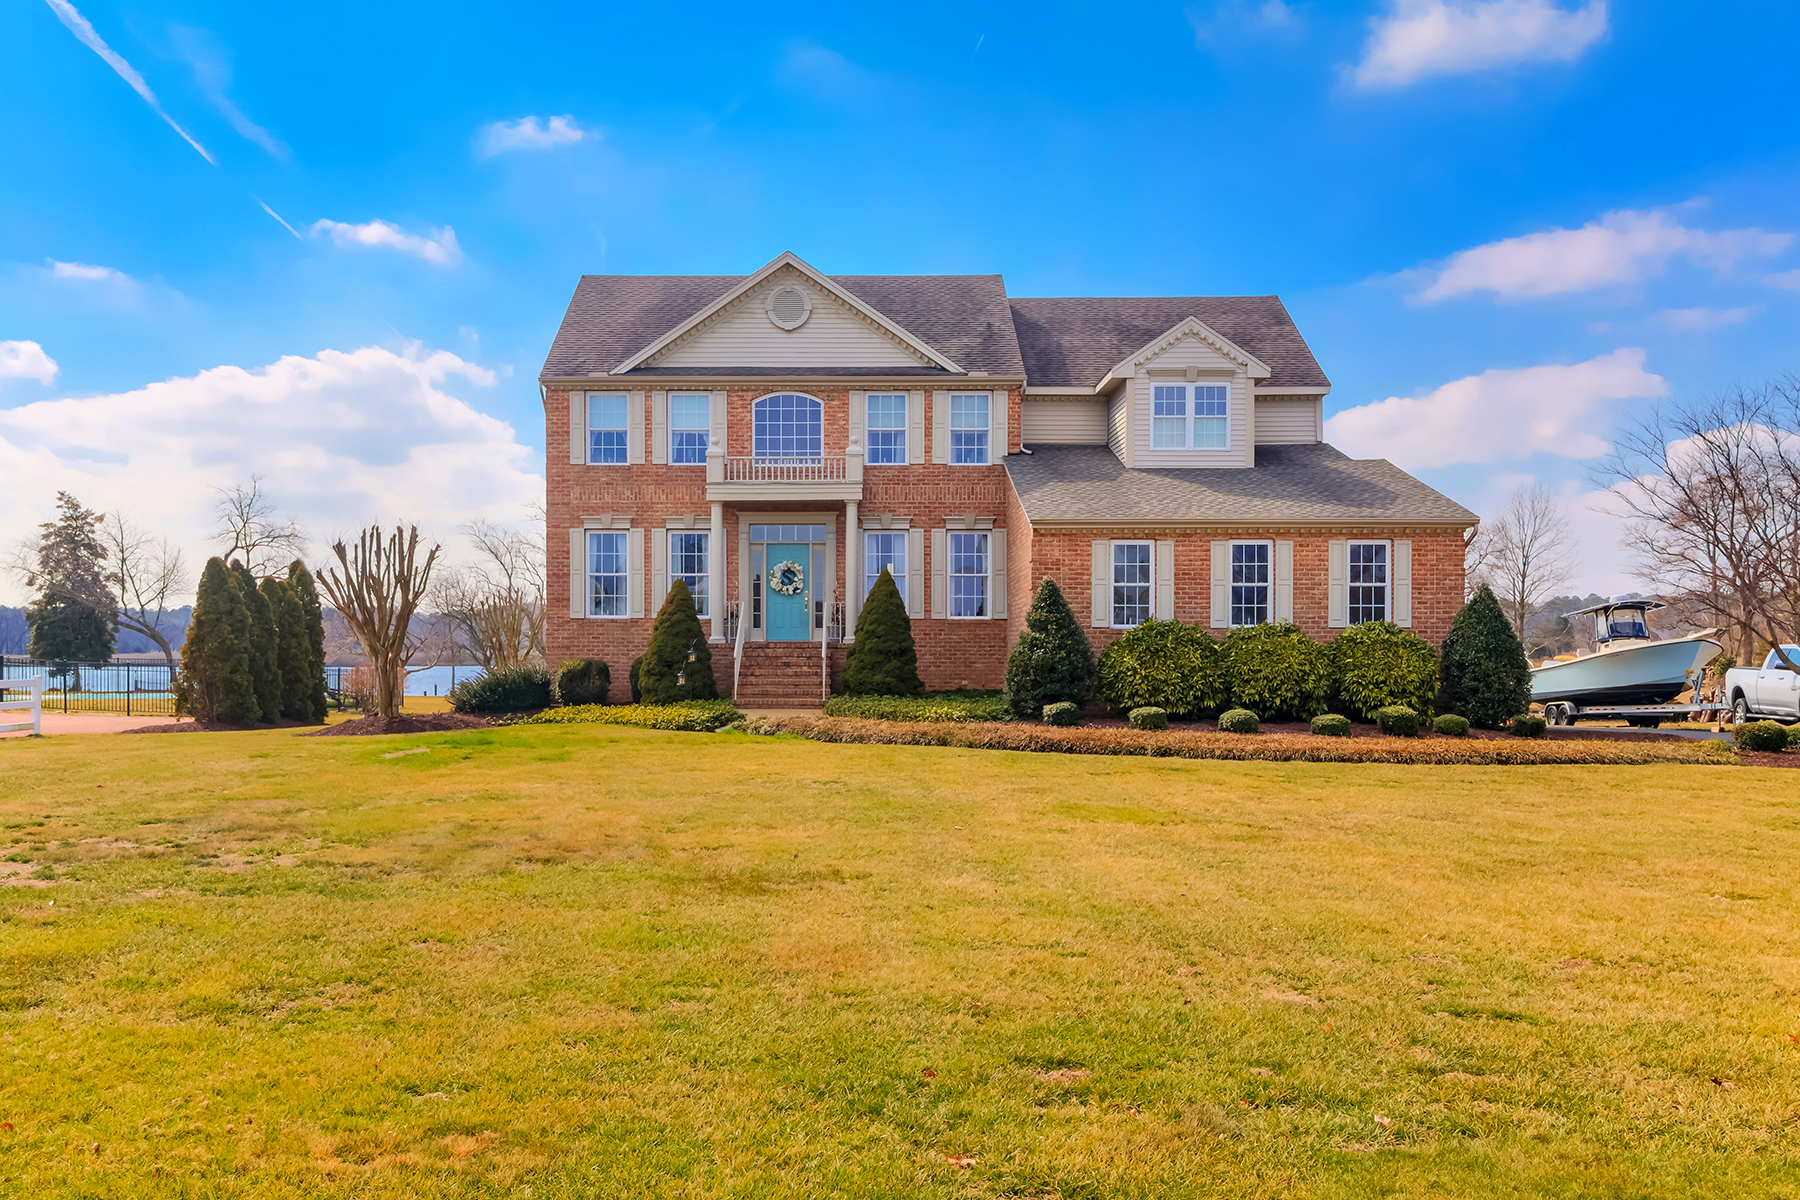 Single Family Homes for Sale at Berlin, Maryland 21811 United States